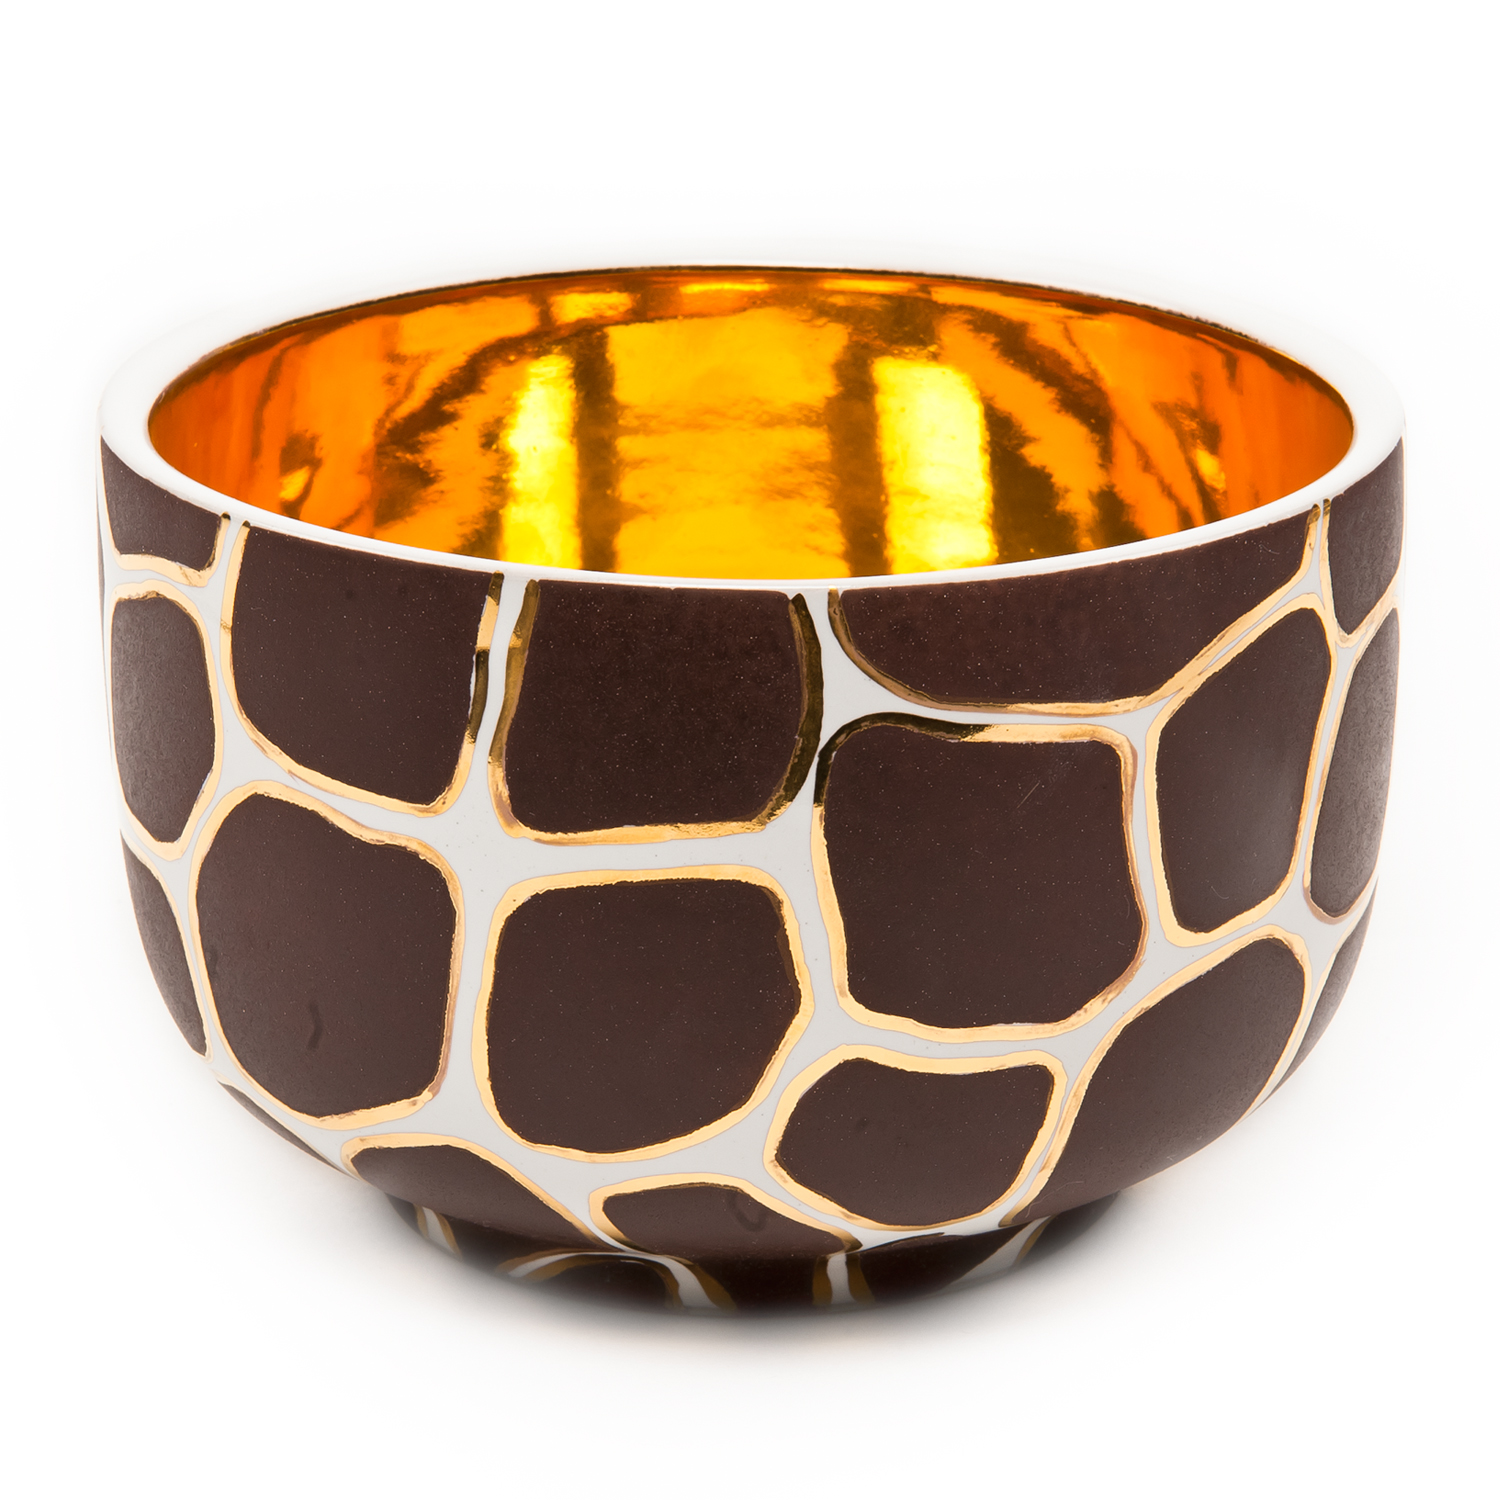 Captivating waylande gregory for home accessories ideas with waylande gregory ceramics